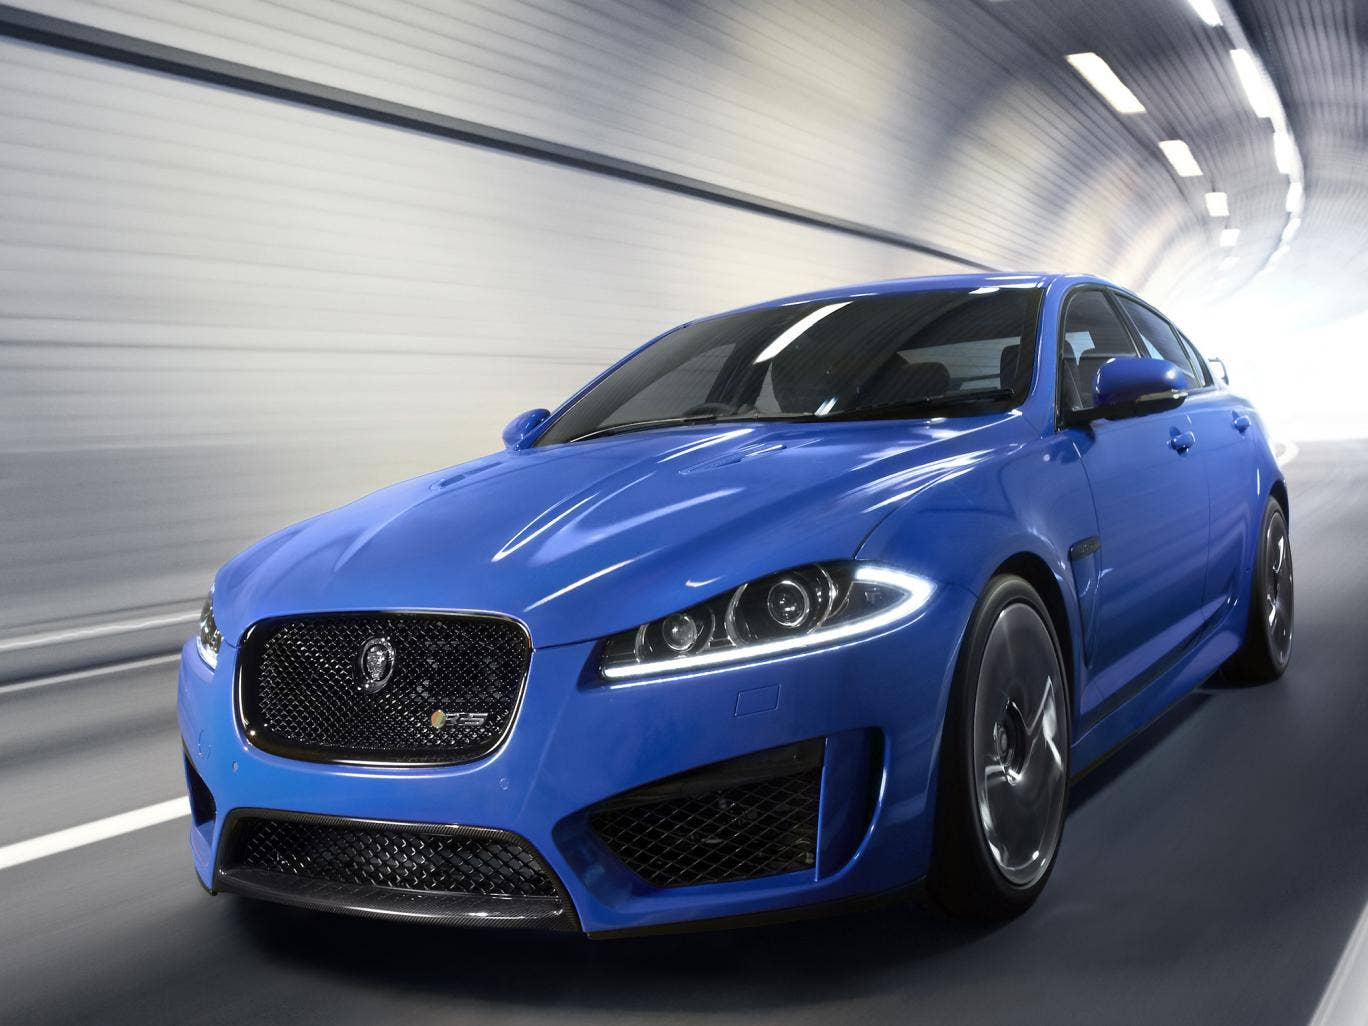 The all-new XFR-S performance saloon